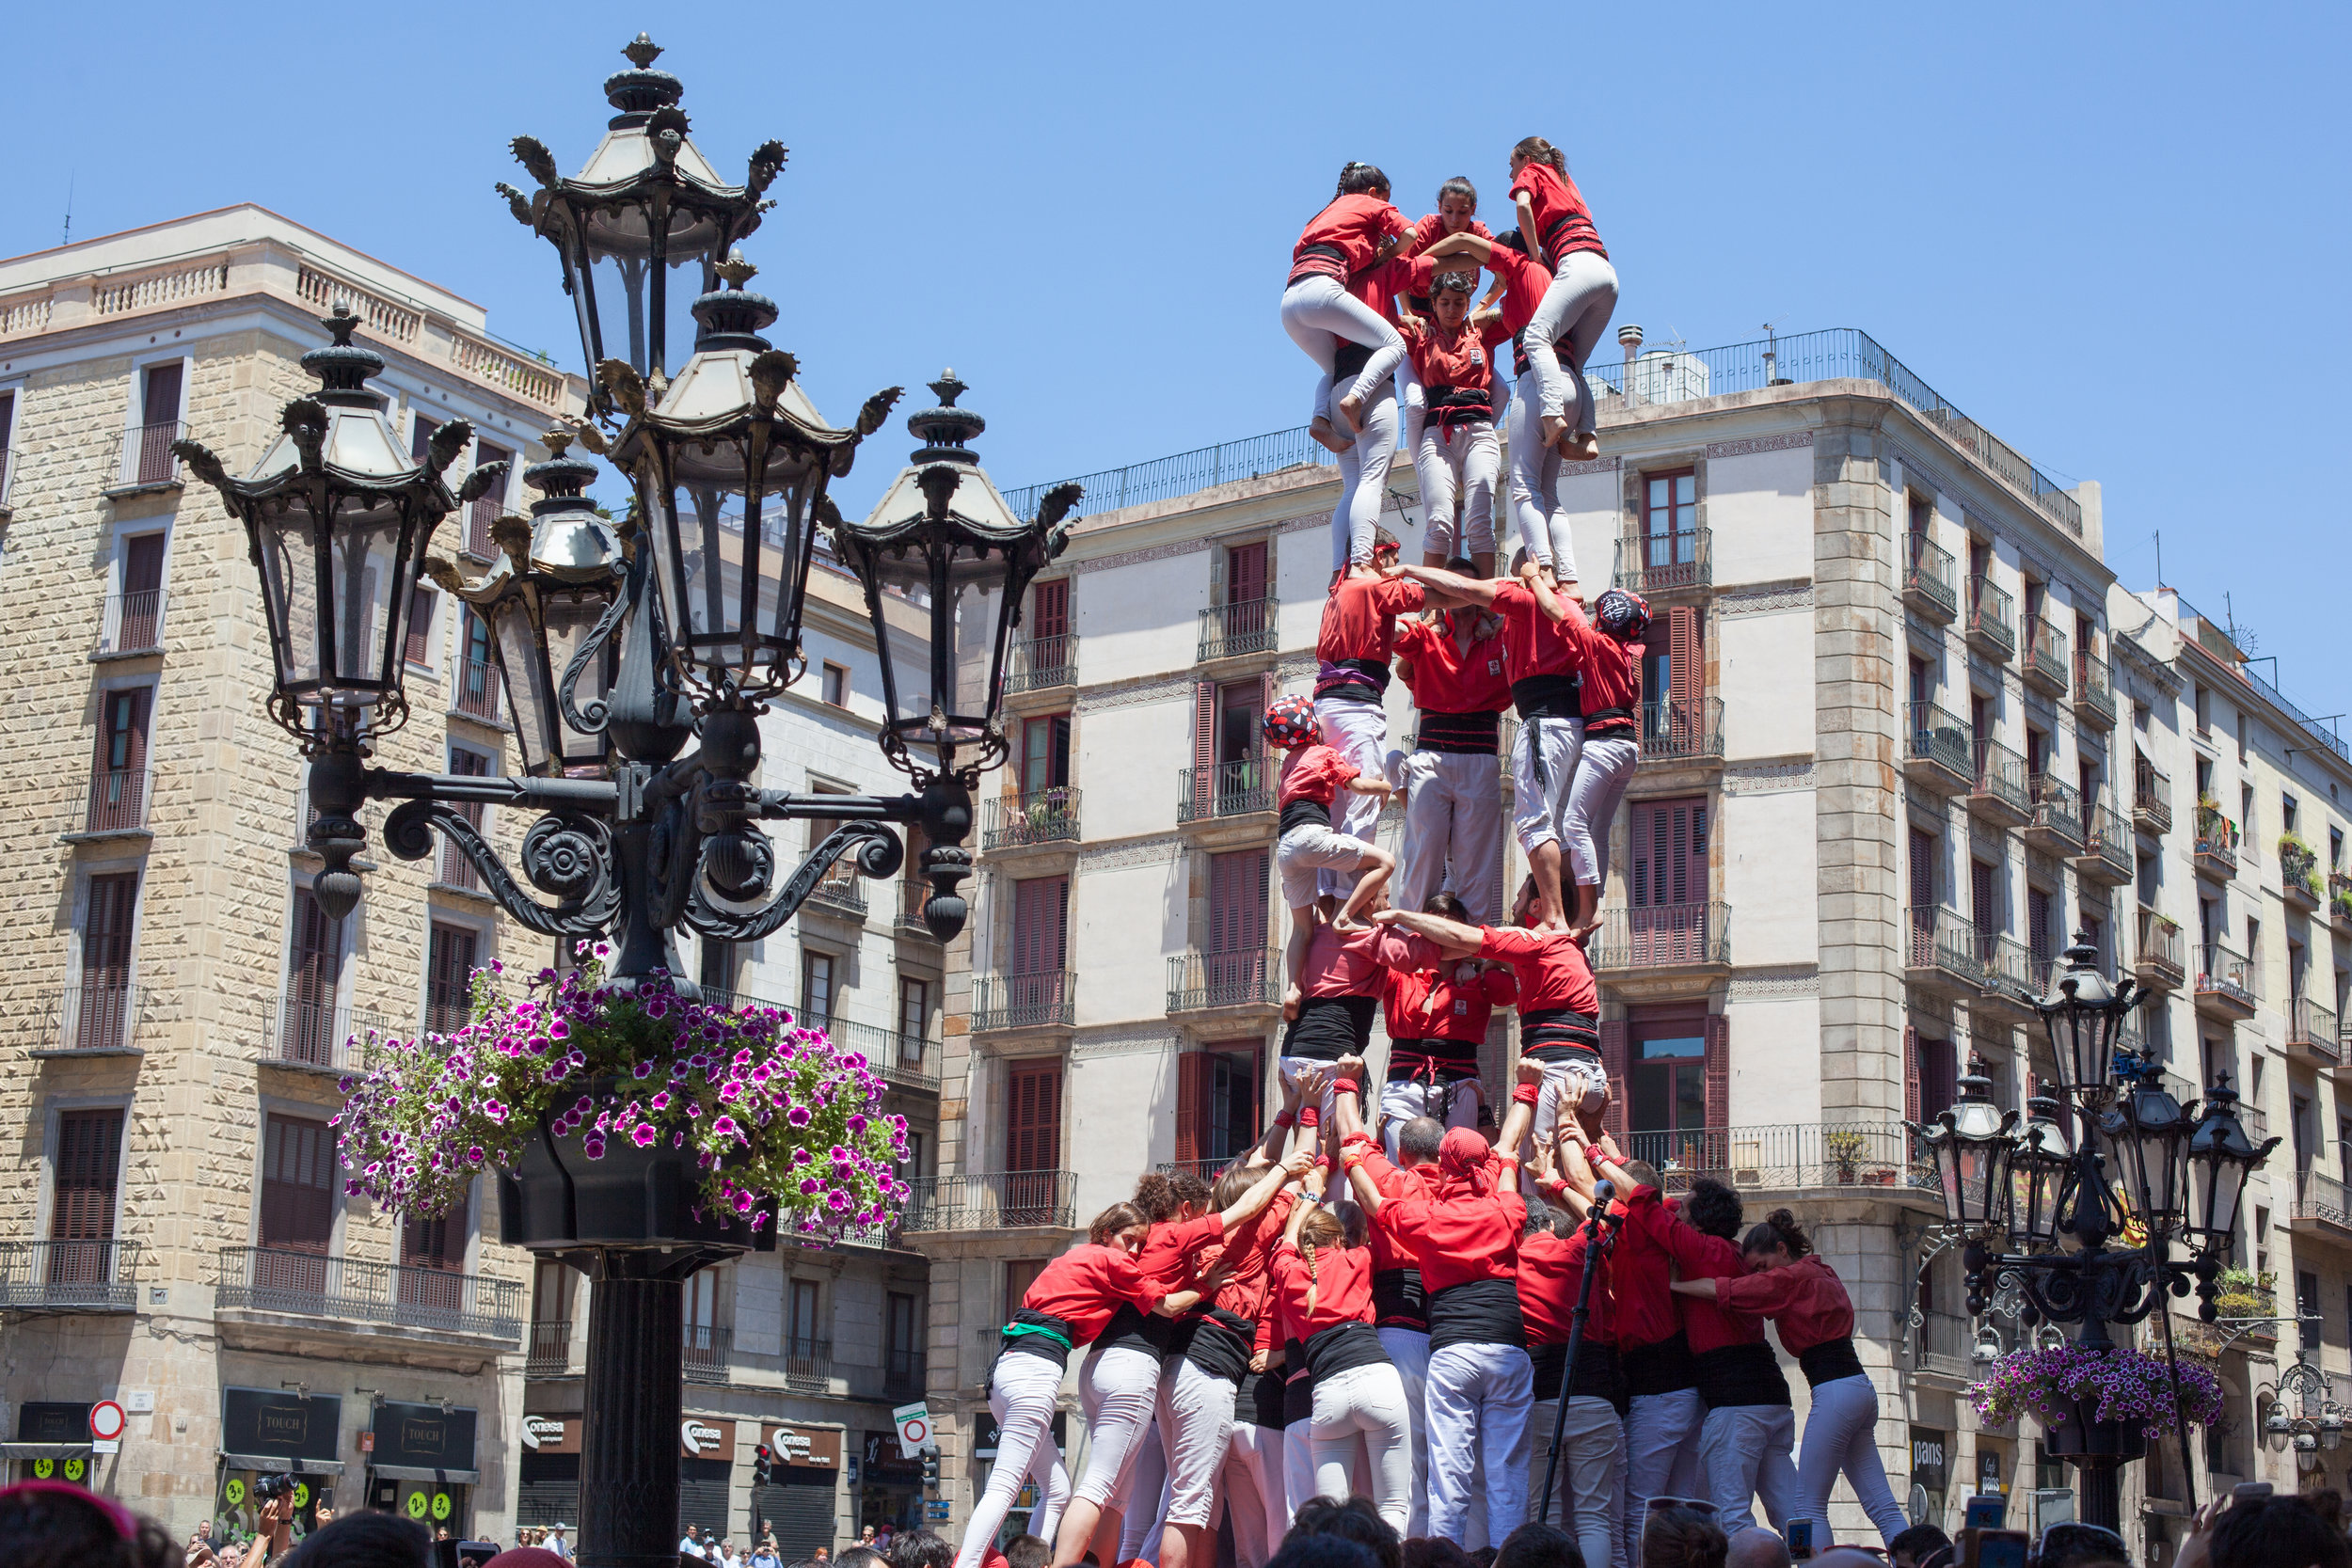 A   castell   (Catalan pronunciation:  [kəsˈteʎ] ) is a  human tower  built traditionally in festivals at many locations within  Catalonia